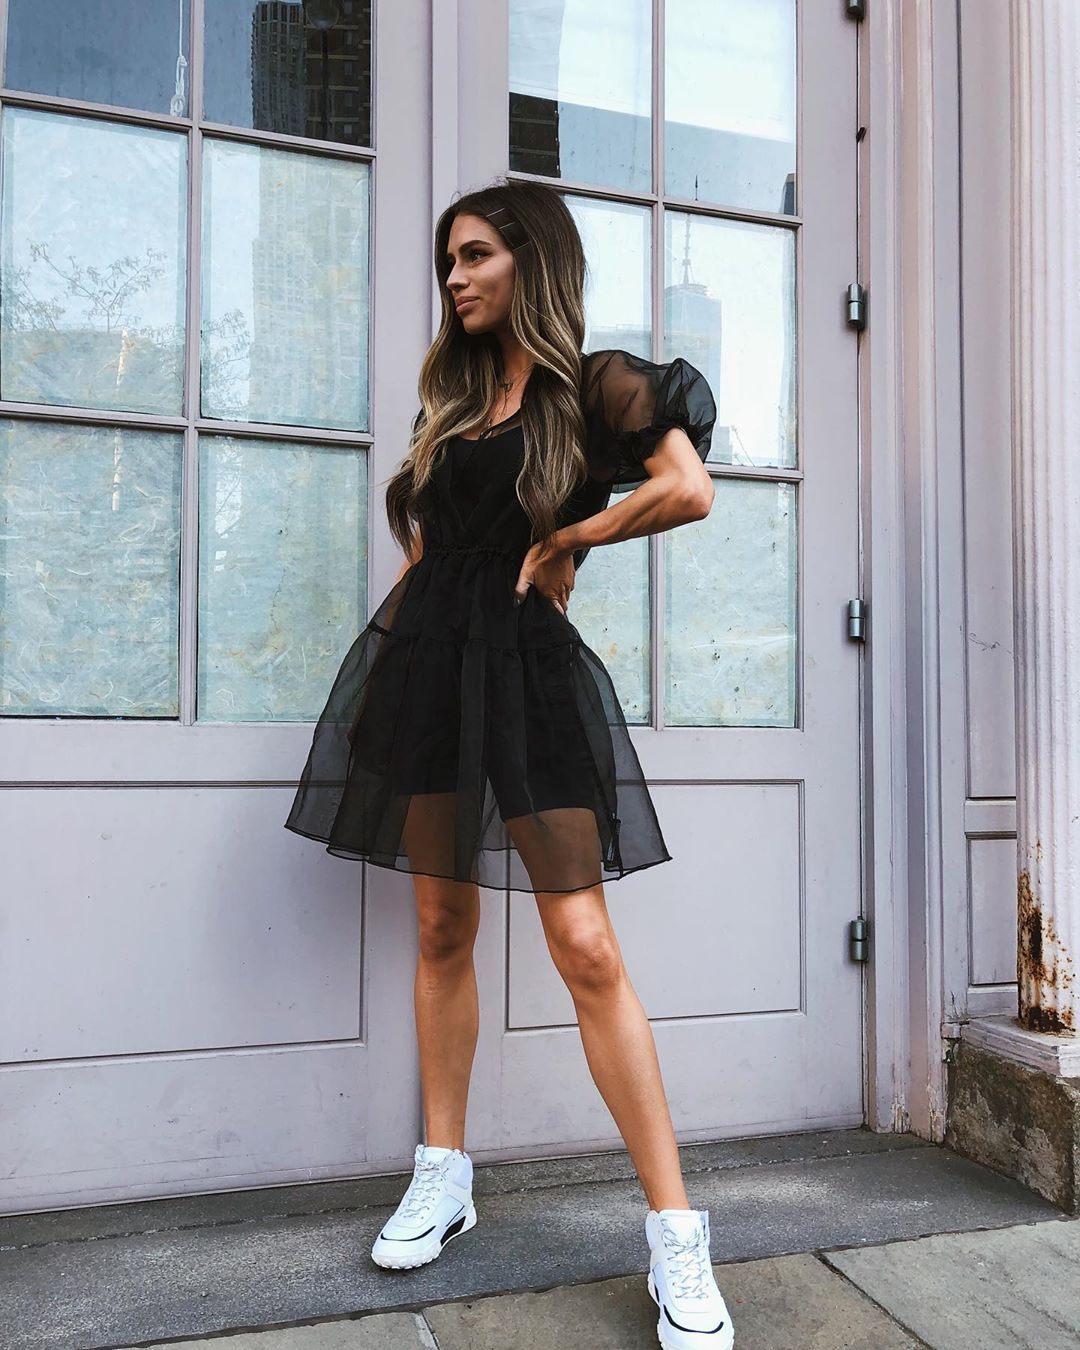 ladies outfits with sneakers